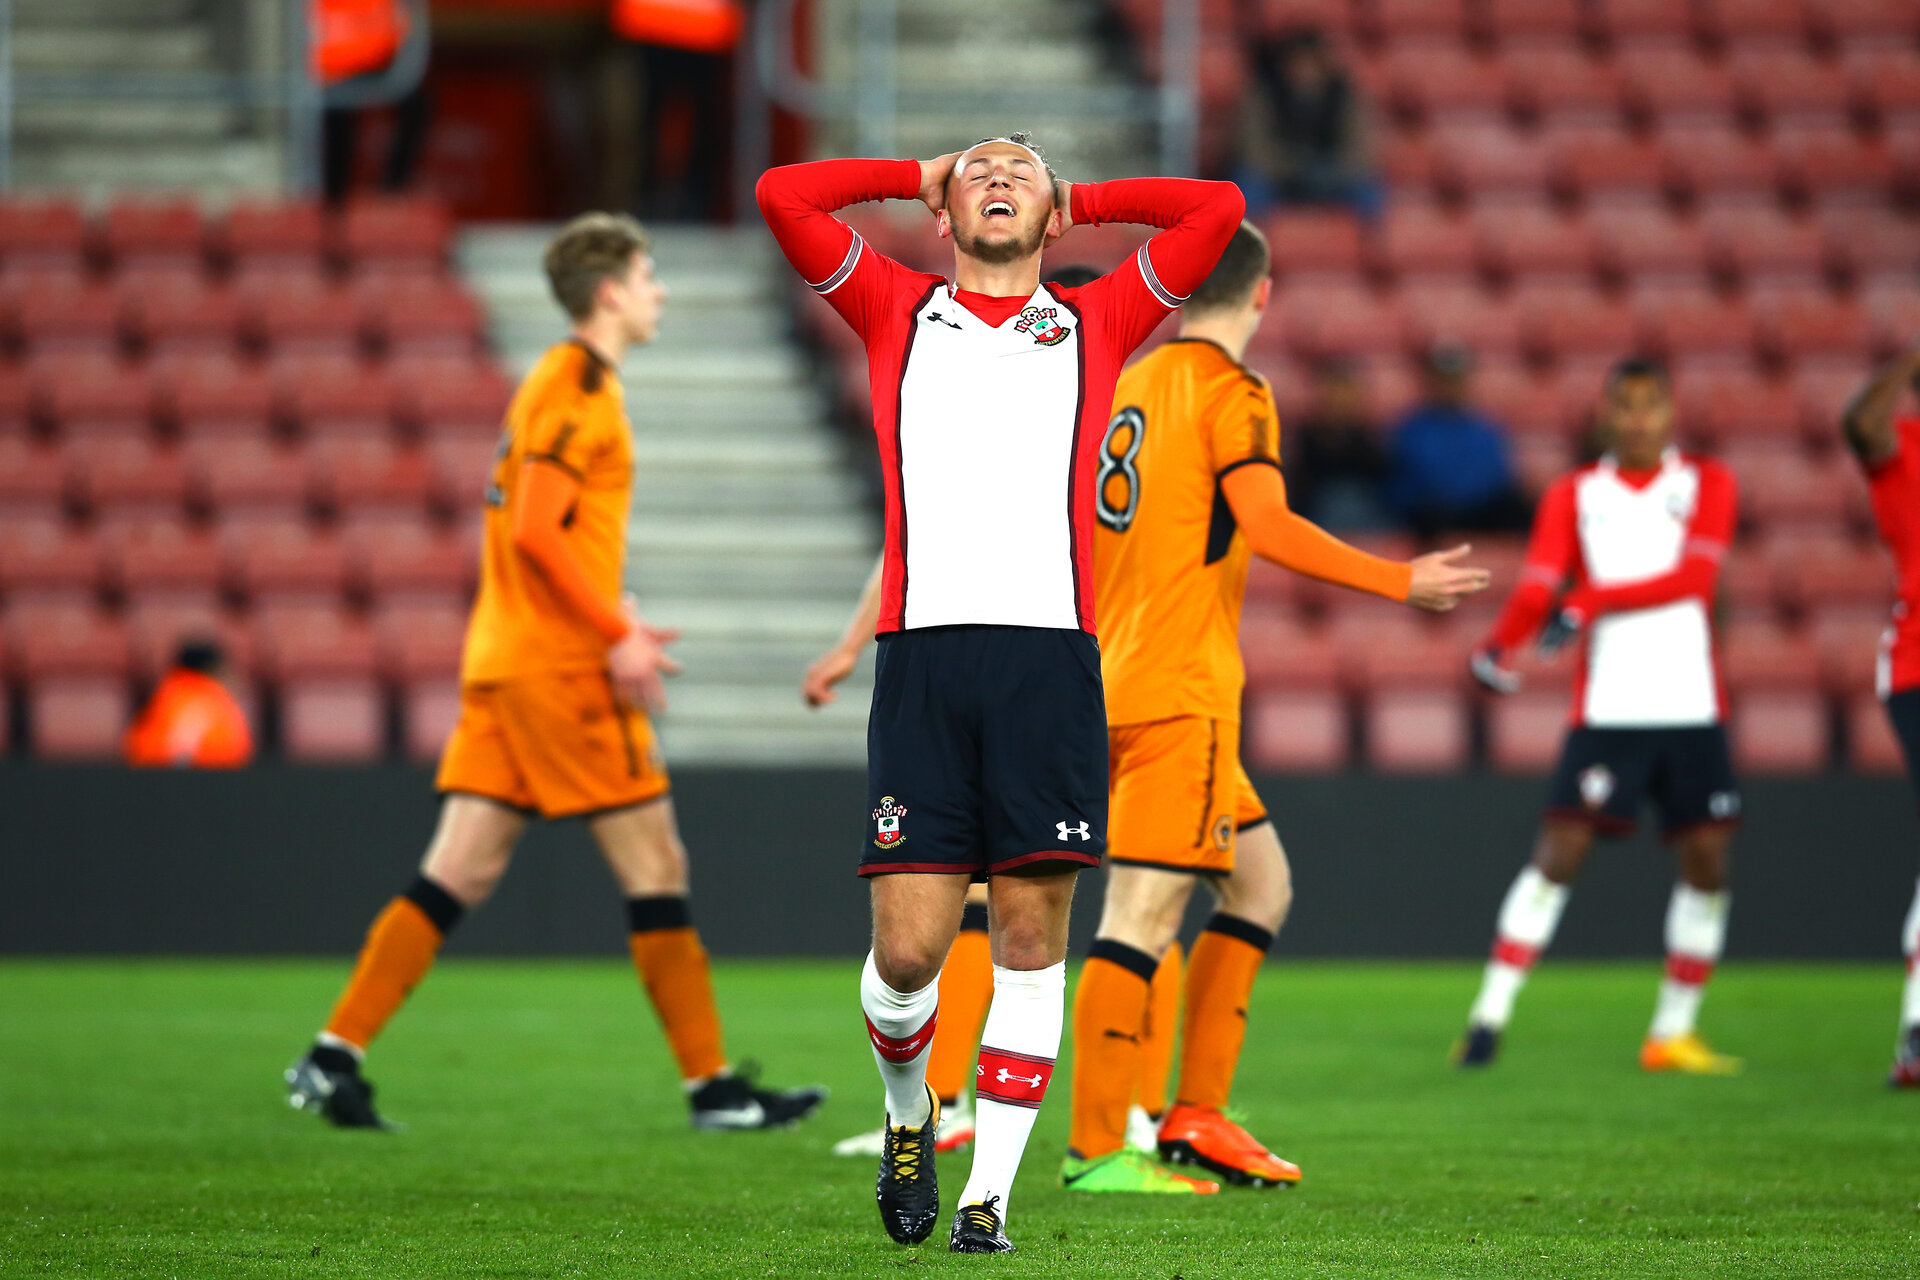 SOUTHAMPTON, ENGLAND - DECEMBER 14: Harry Hamblin (middle) of Southampton FC during the match between Southampton FC vs Wolverhampton Wanders for the FA U18's Youth Cup on December 14, 2017 in Southampton, England. (Photo by James Bridle - Southampton FC/Southampton FC via Getty Images)